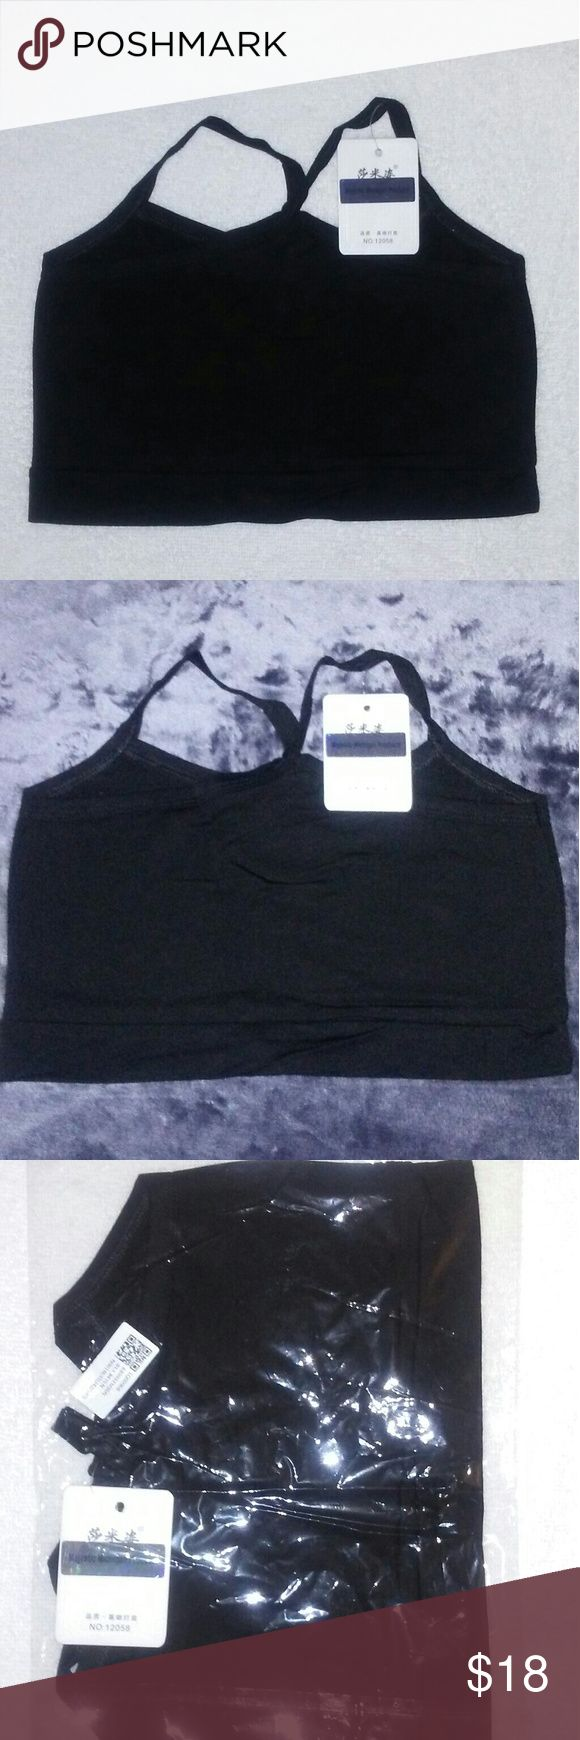 Women's Black Sports Bra crop top cami Gym Yoga You are Viewing 1 Brand New Women's Sports Bra Black petite Solid crop top cami Cotton Gym Yoga Bra Wire Free one size. Lenght 28cm/11.02 inches Bust size 64-88cm /25.2 inches 34.65 inches, CHEST PADS are NOT INCLUDED. Super elastic, breathable & Comfortable, 80  % Cotton 20 % Spandex made in China. Majestic Michigan Products Intimates & Sleepwear Bras